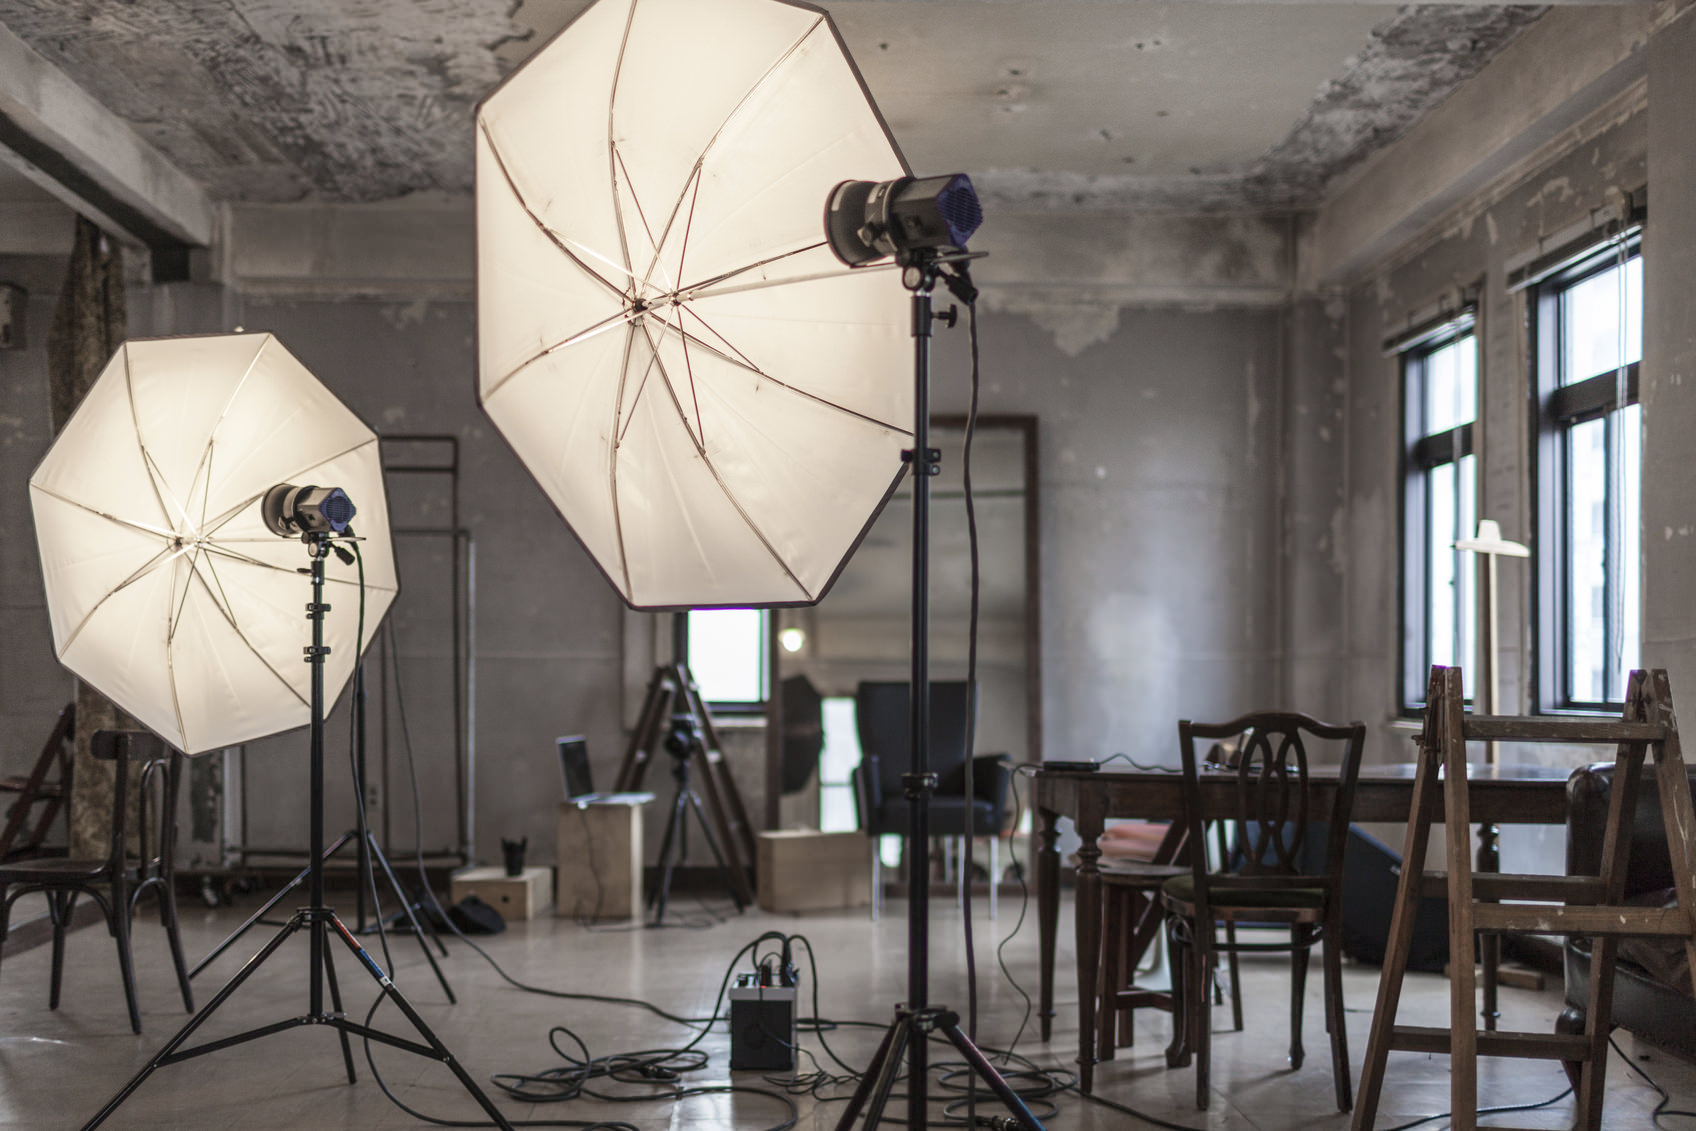 How to Create a Home Photography Studio in 6 Easy Steps